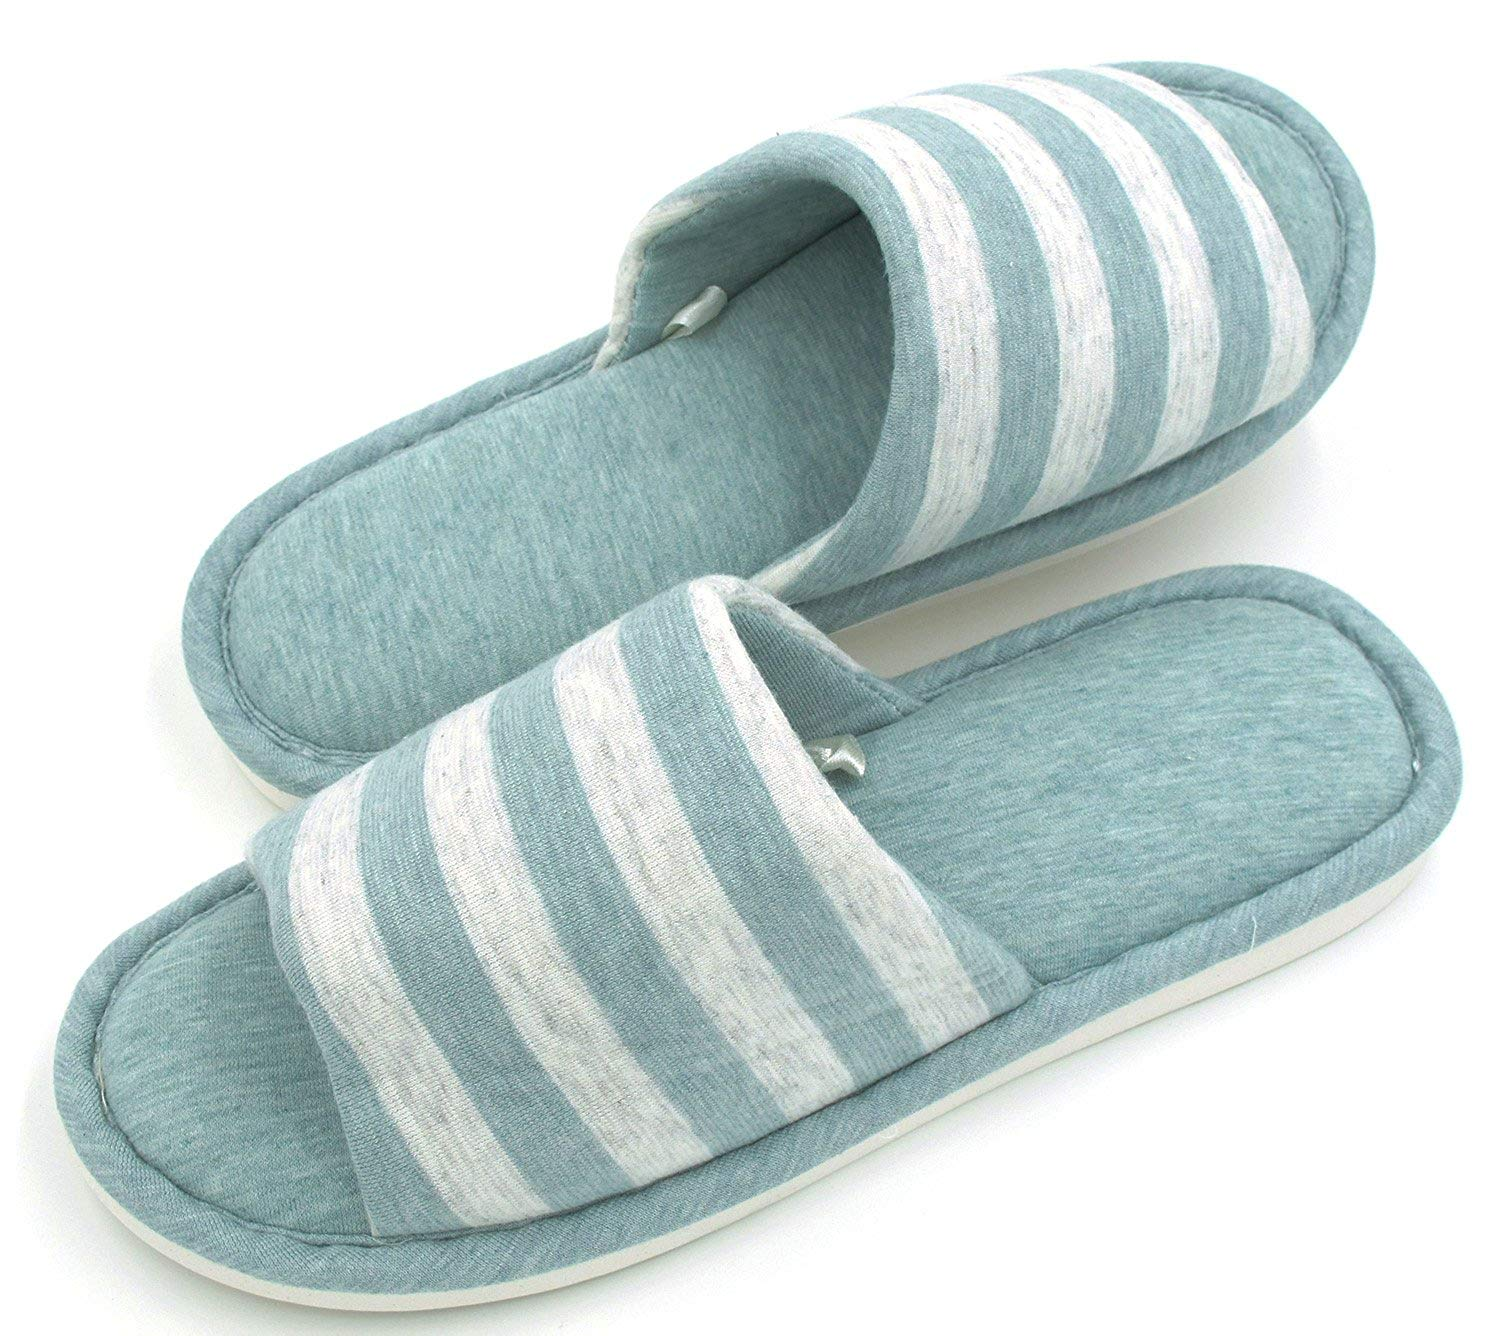 42994d68e43f0e Get Quotations · Sunshine Code Men s Women s Memory Foam Cotton Washable  Stripe Slippers for Travel House Hotel Spa Bedroom